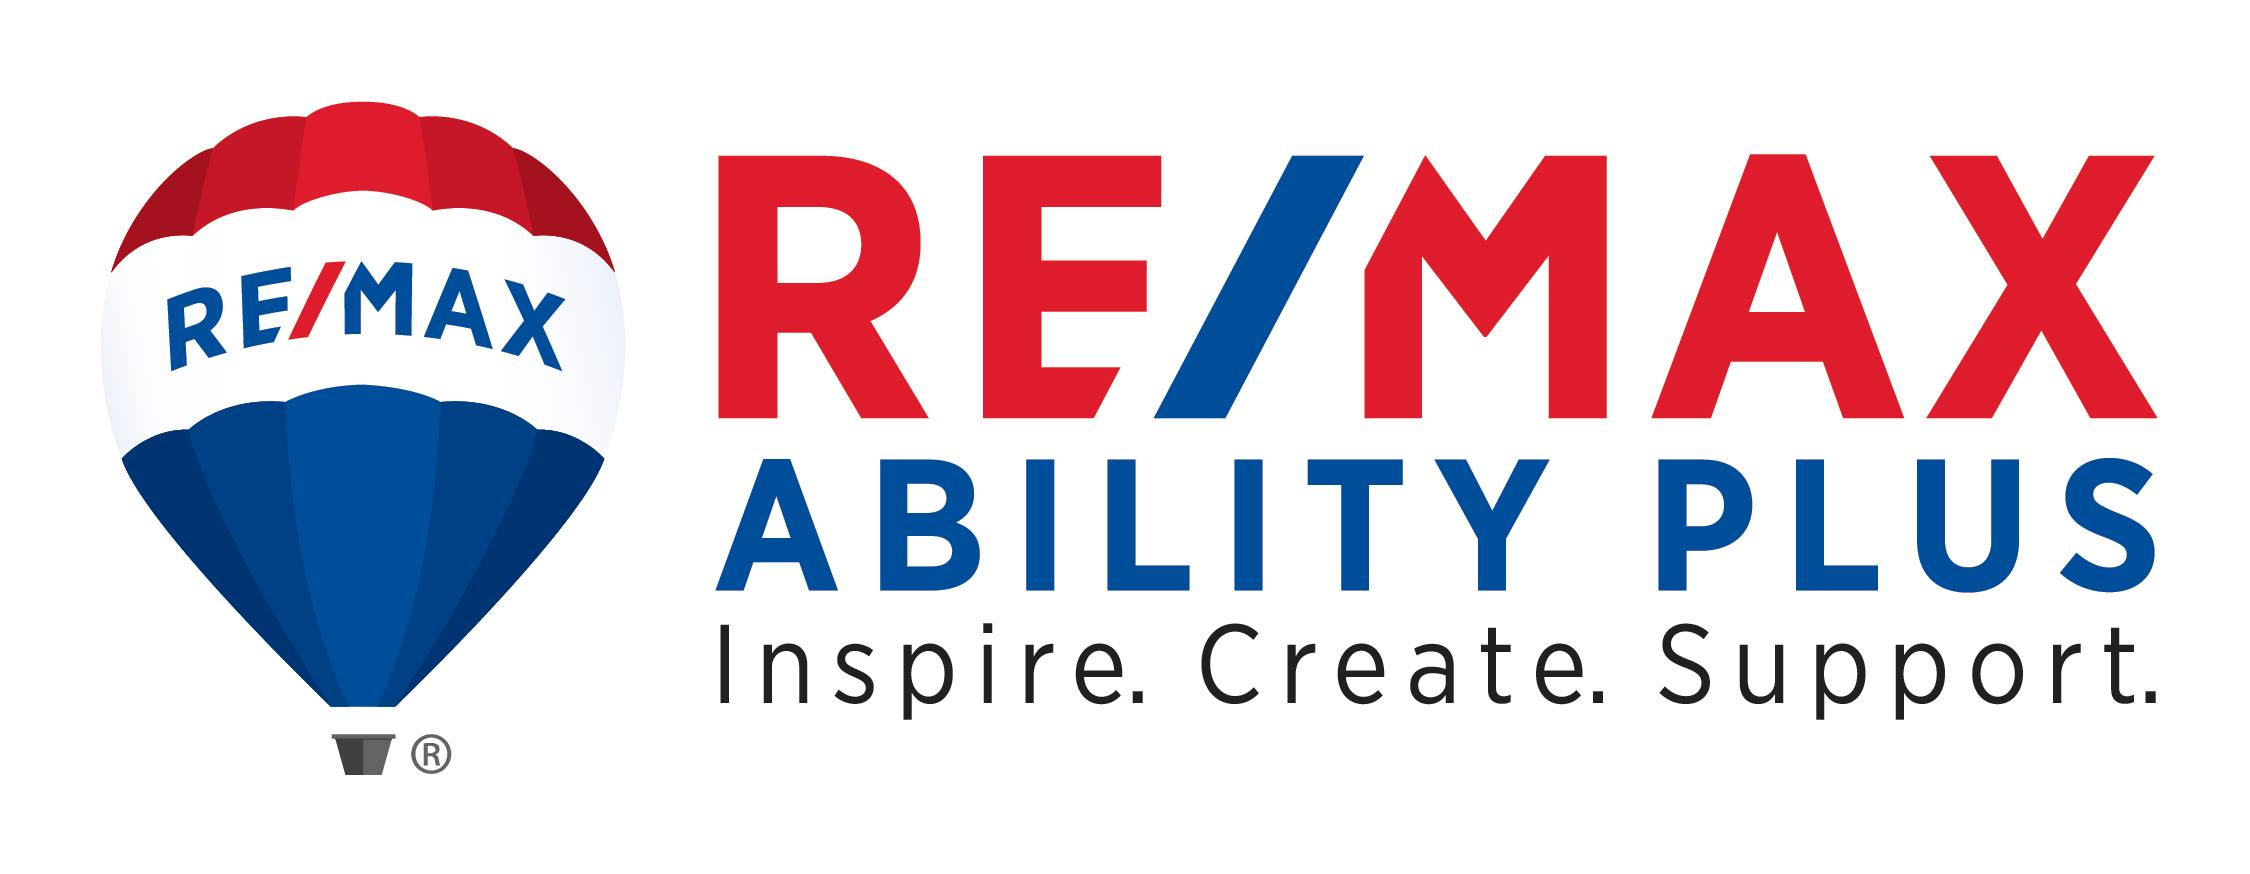 Jayne Gauci | RE/MAX Ability Plus